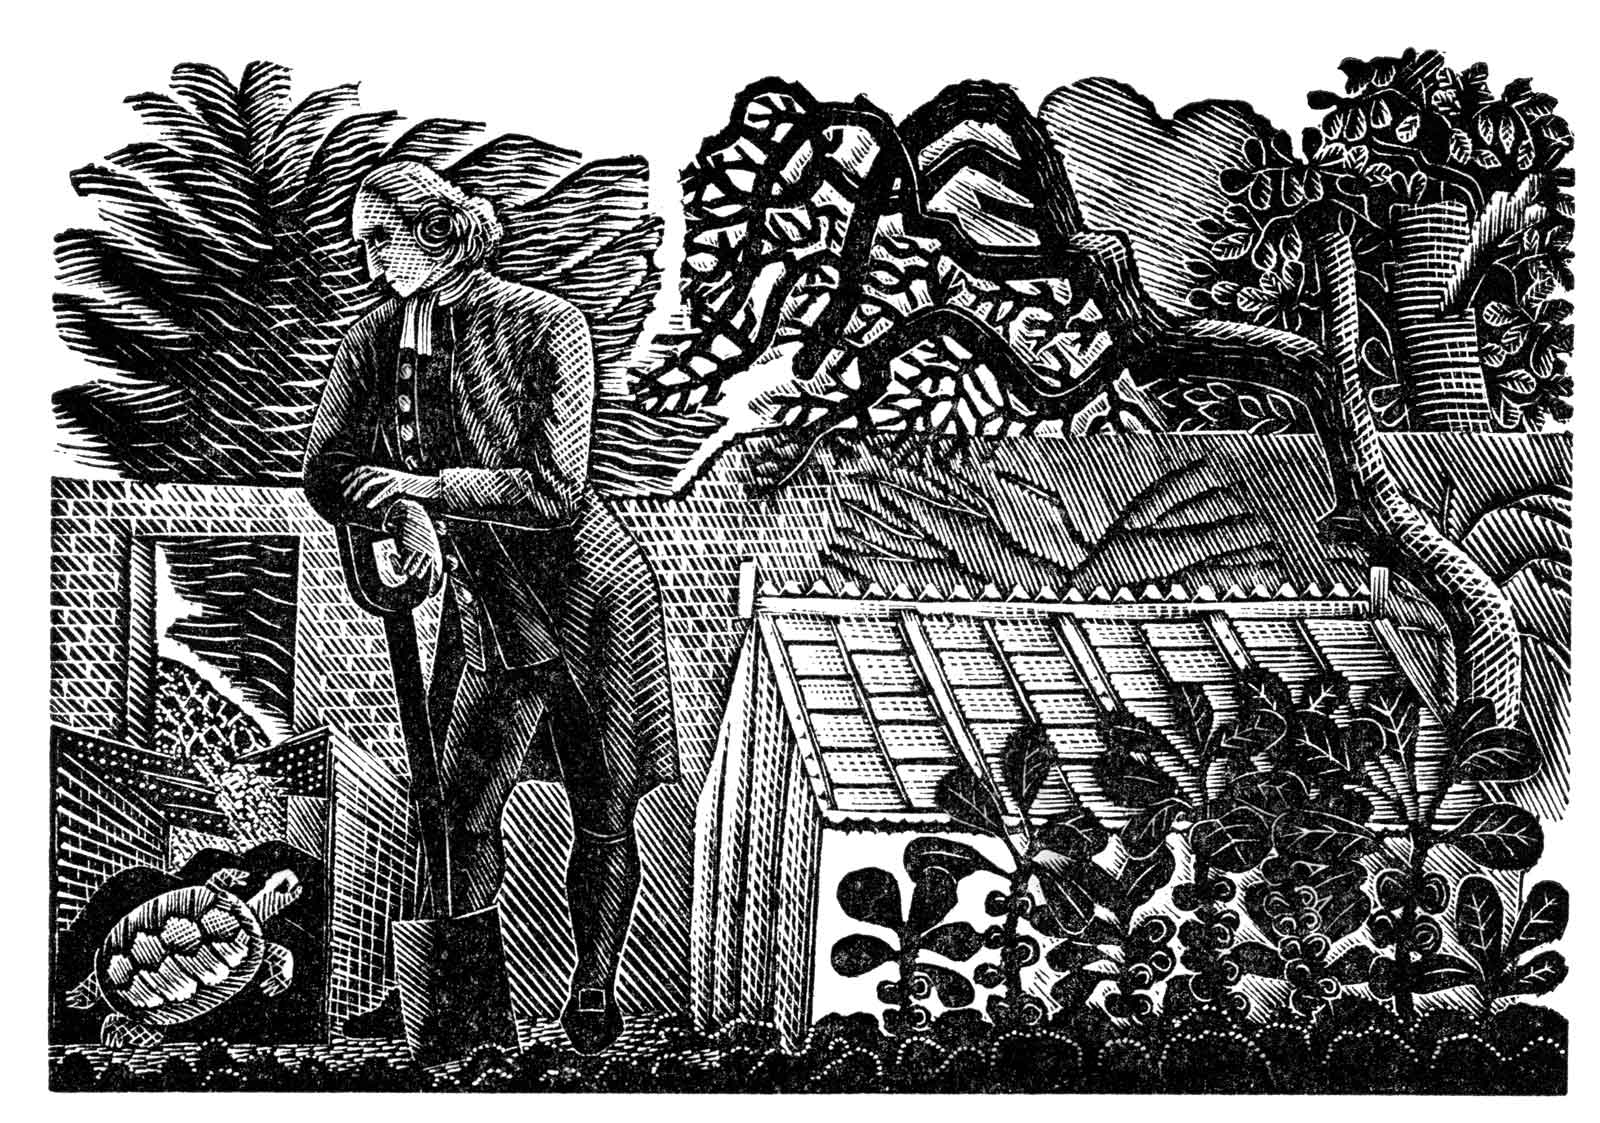 A man in 18th century dress leans on a spade looking down at a tortoise in a garden, with a small greenhouse behind him.